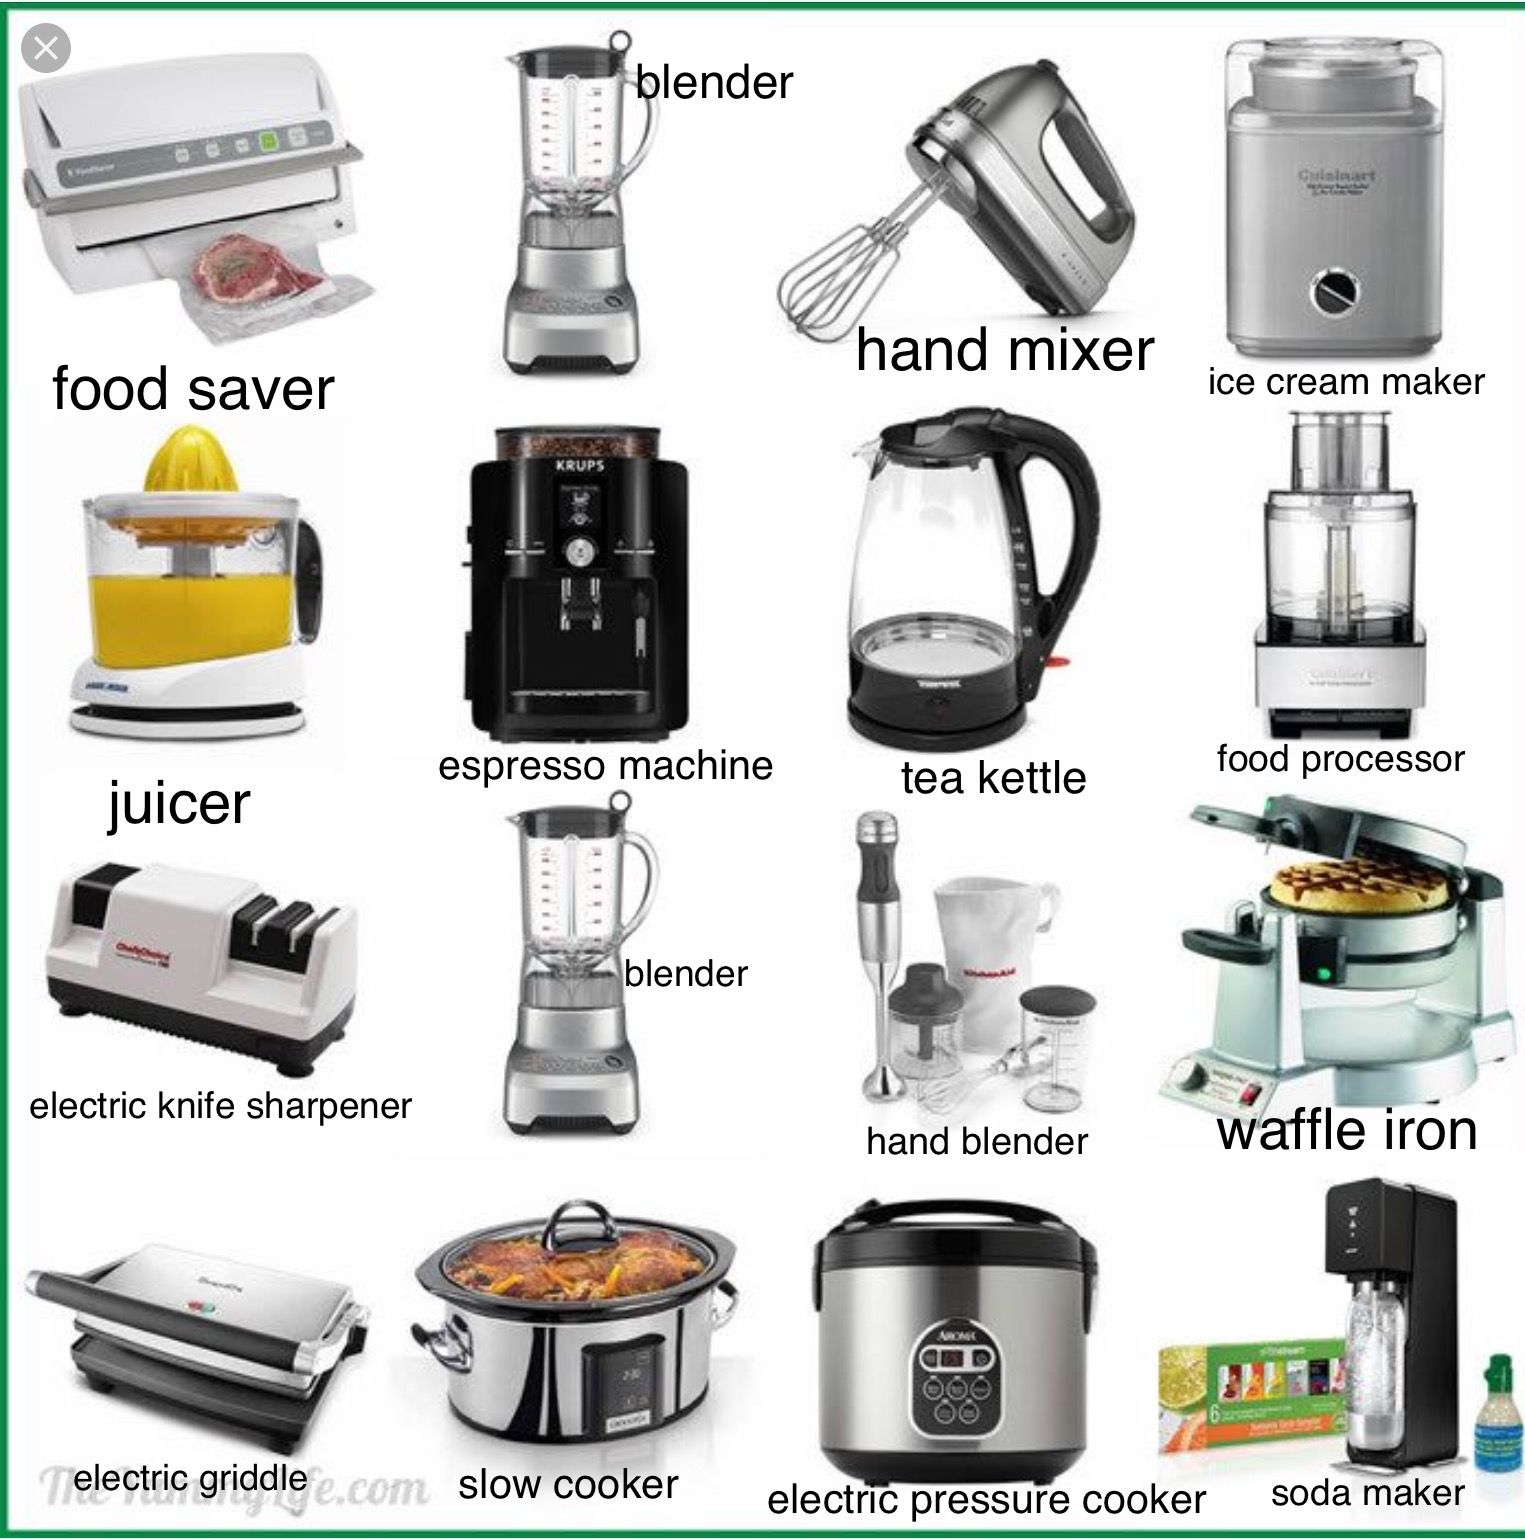 Pin By Heang On Vocabulary Kitchen Appliances Small Kitchen